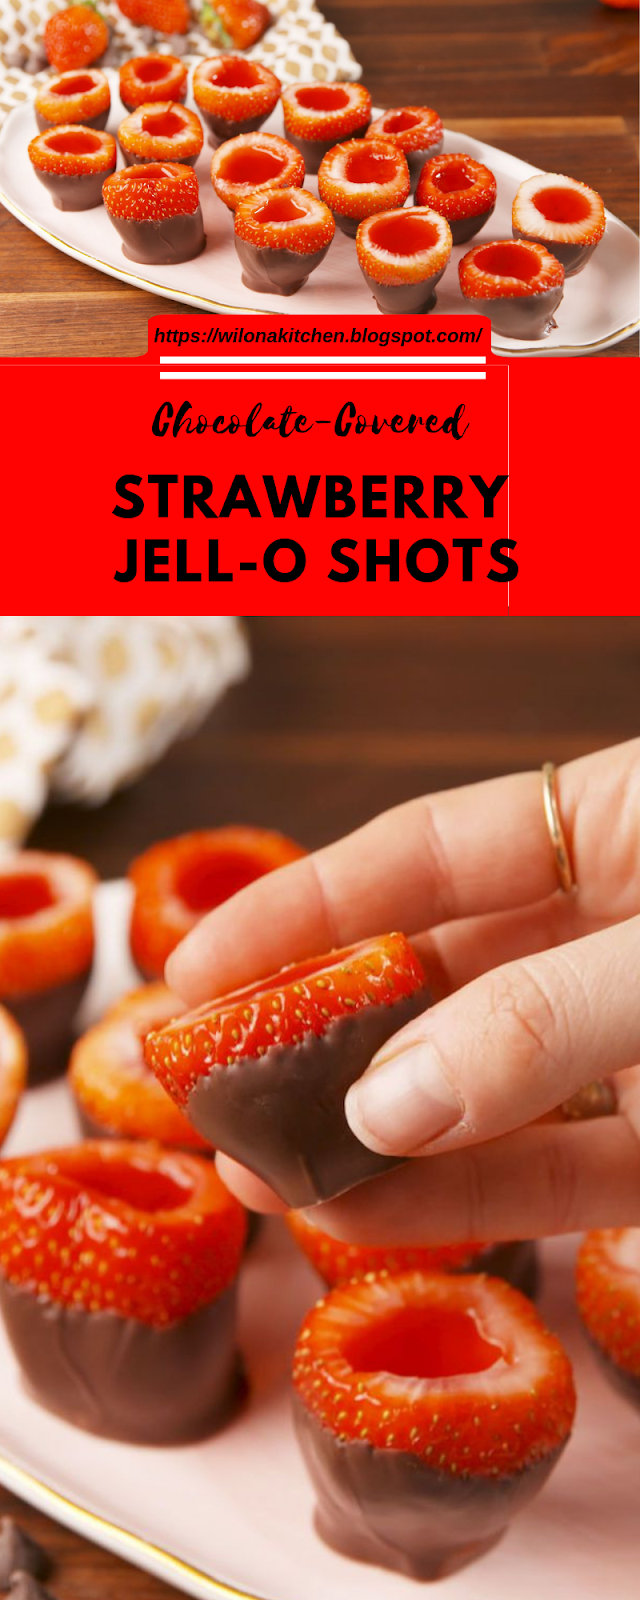 Chocolate-Covered Strawberry Jell-O Shots